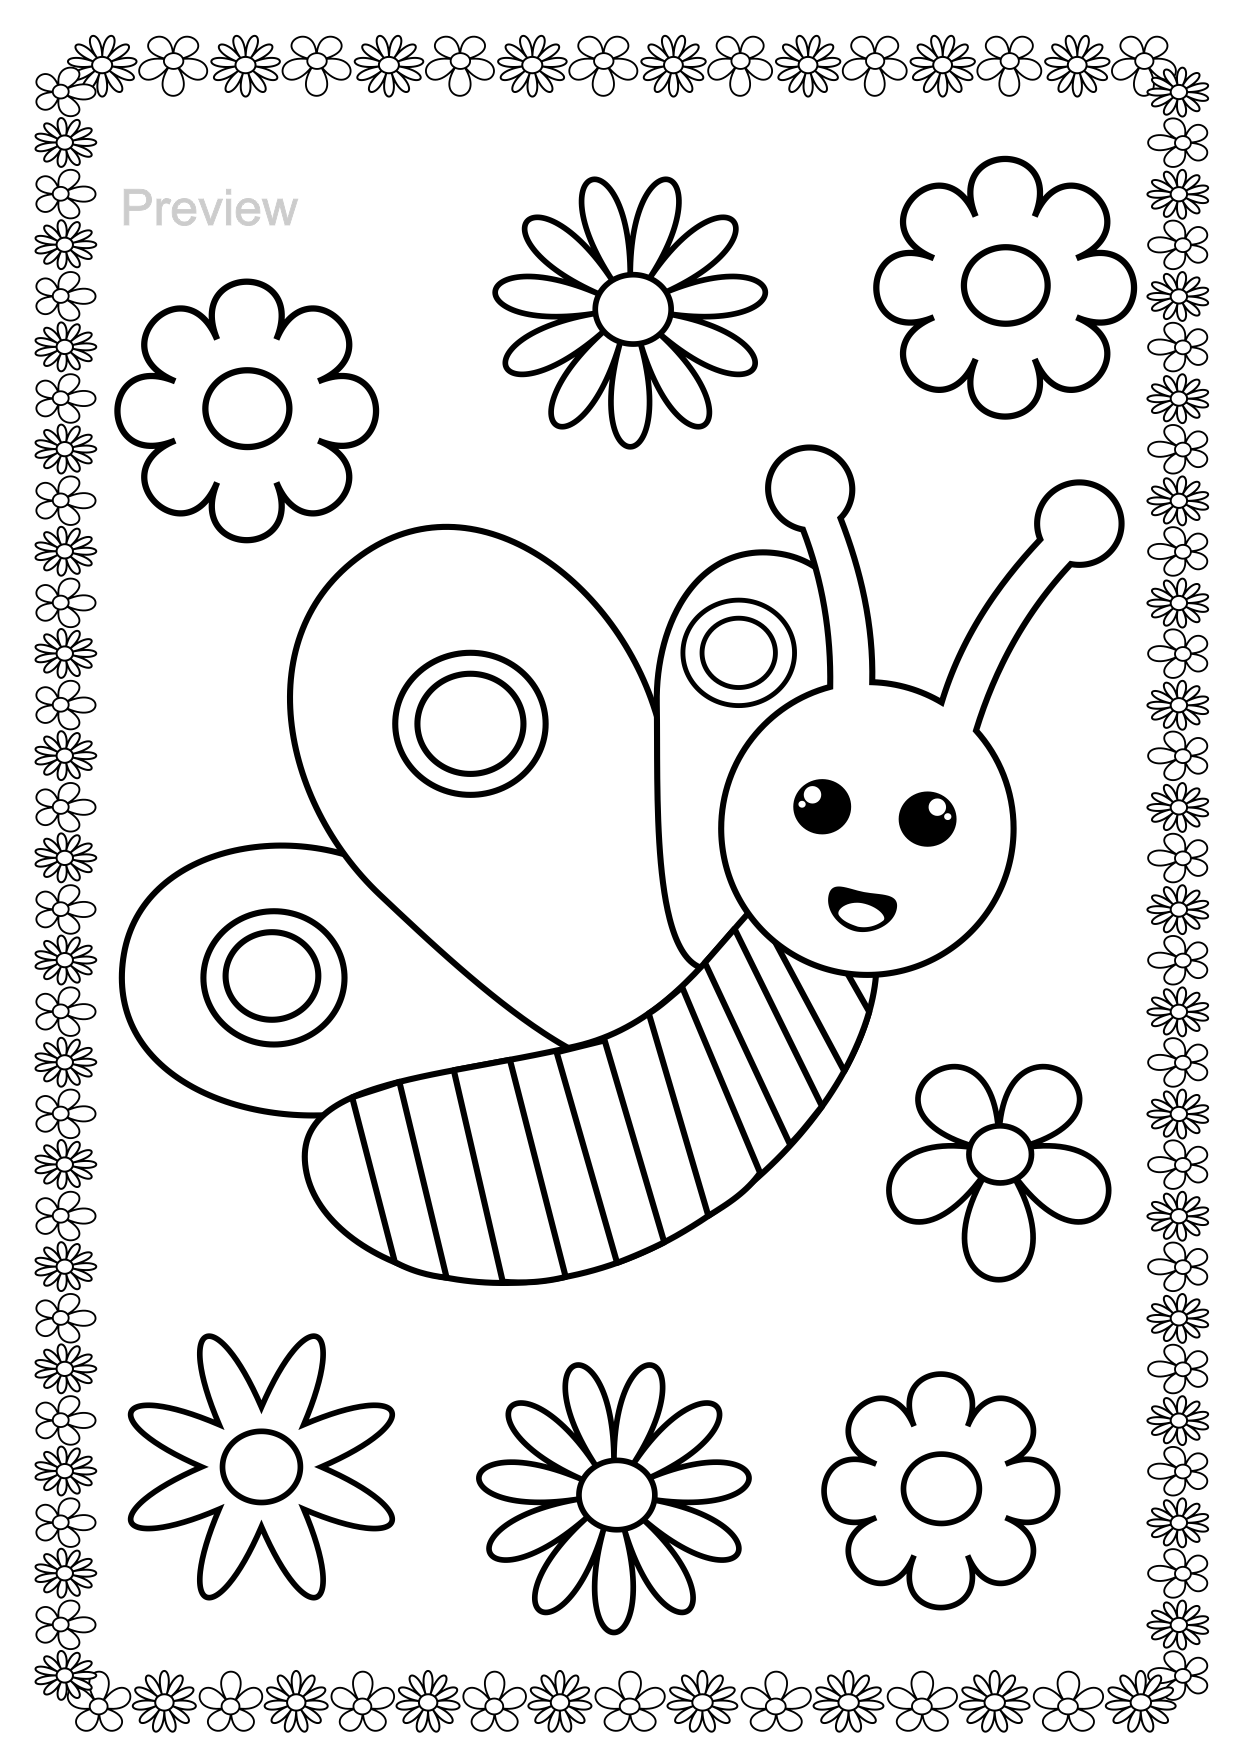 Pin by Anastasiya Multimedia Studio on Coloring Pages ...